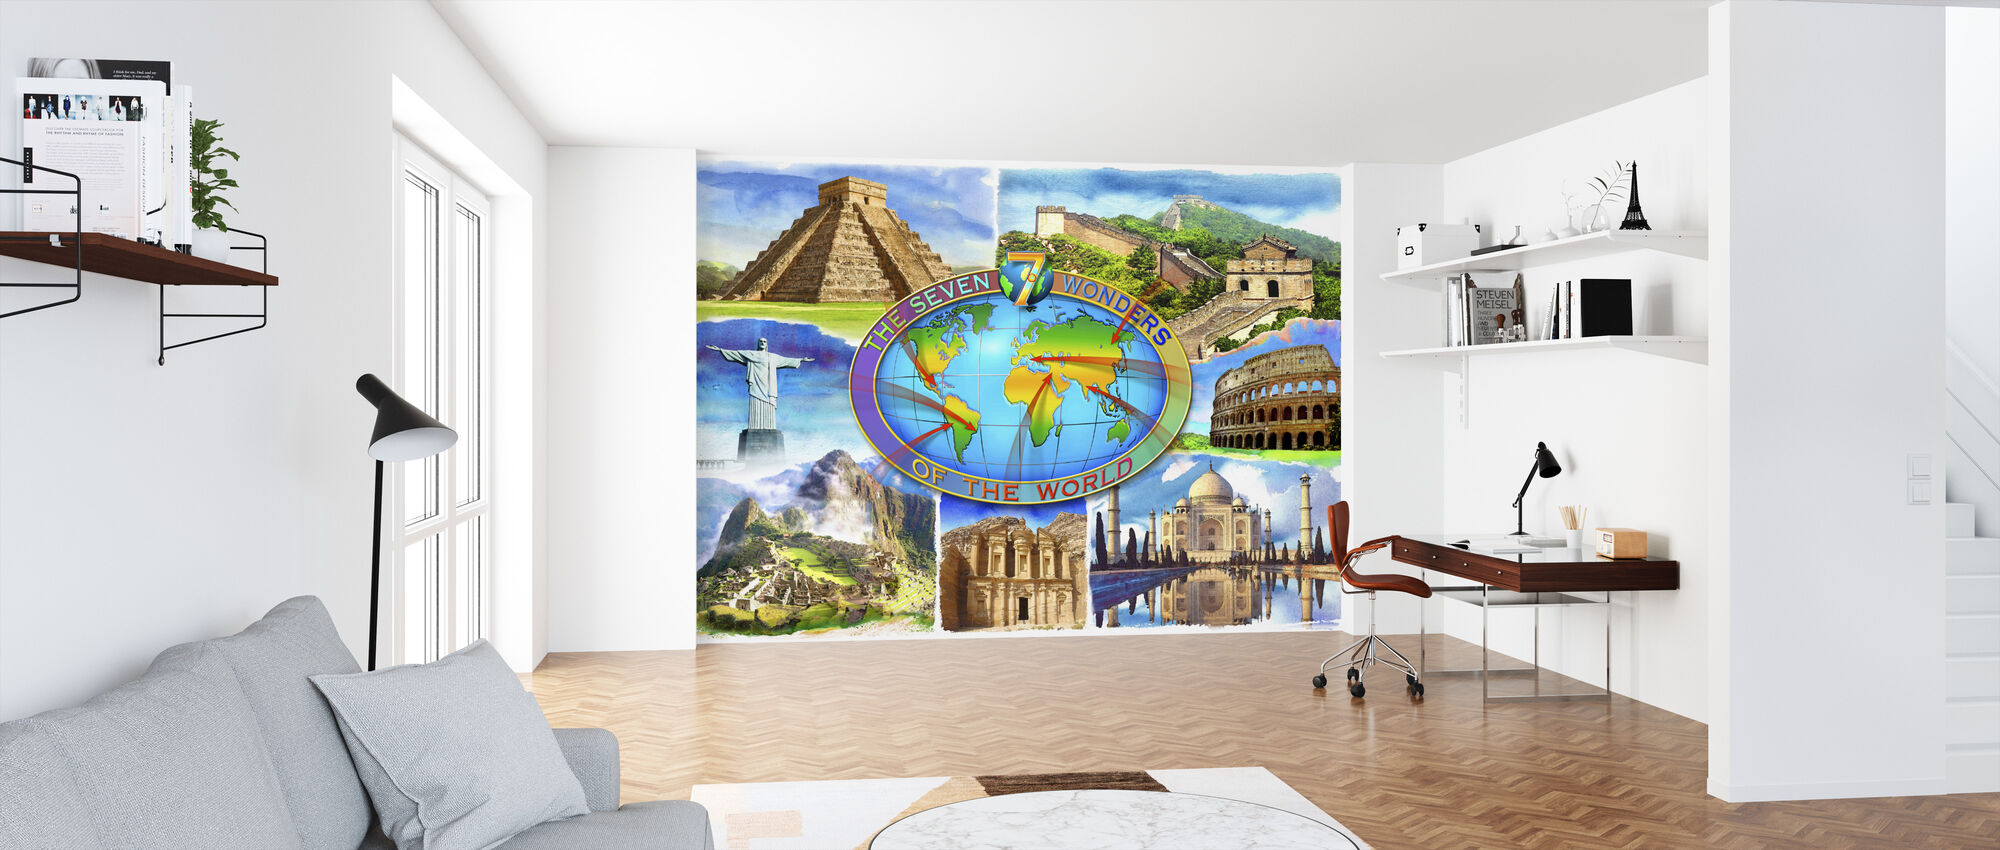 Seven Wonders of the World - Wallpaper - Office